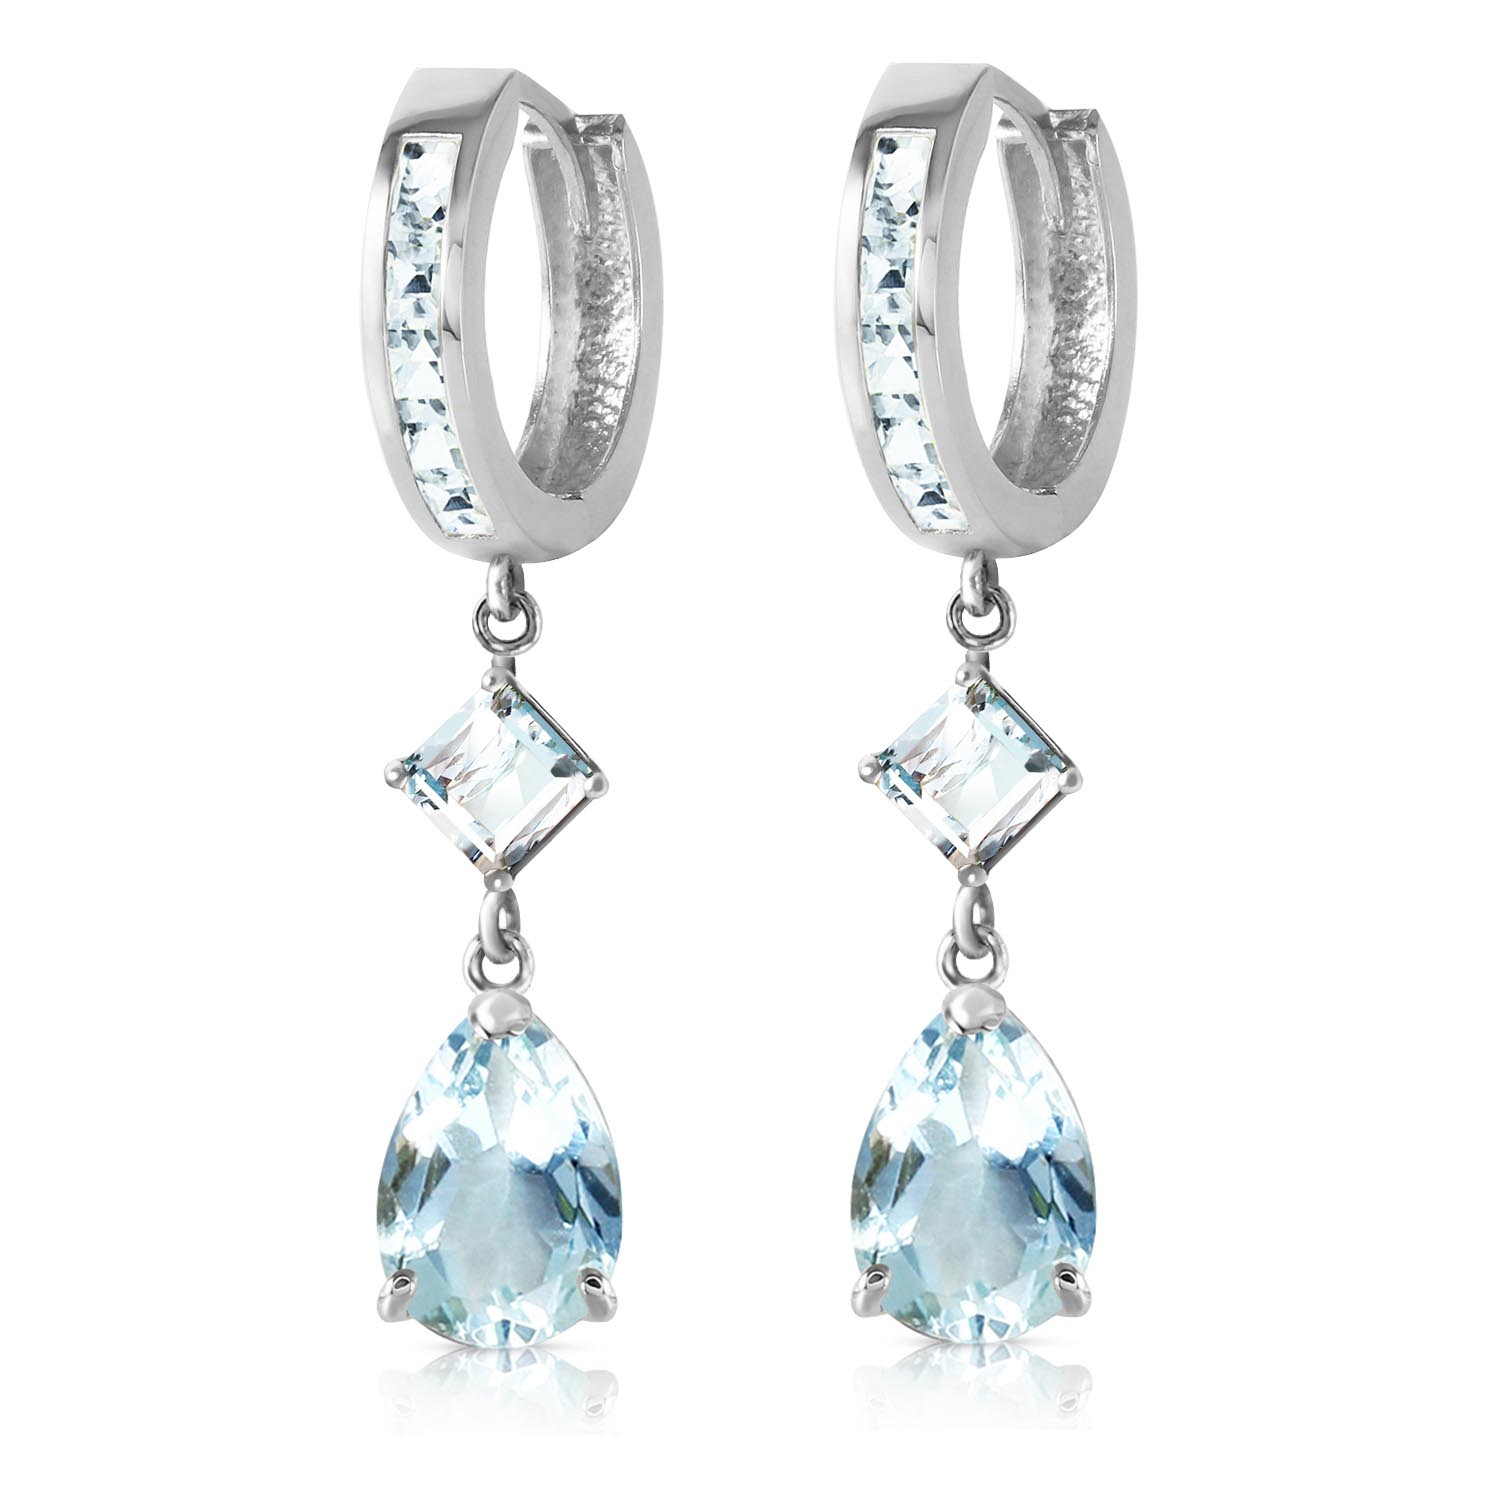 Aquamarine Droplet Huggie Earrings 5.62ctw in 9ct White Gold